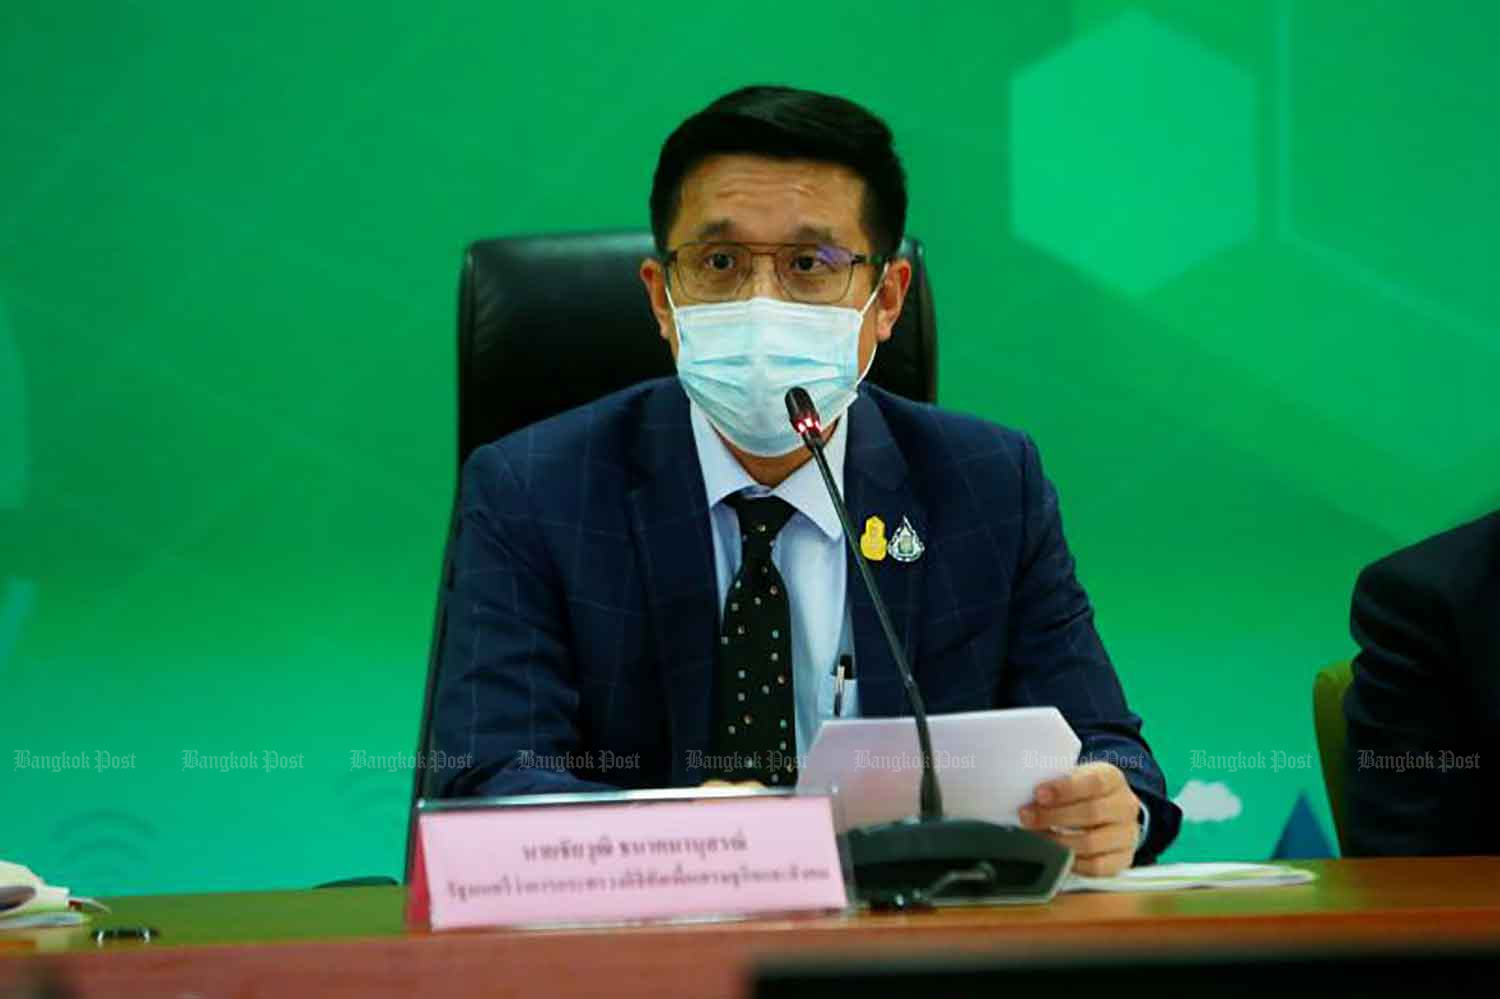 Digital Economy and Society Minister Chaiwut Thanakhamanusorn announces the court orders to shut down eight internet political commentators' accounts, at a press conference in Bangkok on Wednesday. (Photo: Arnun Chonmahatrakool)